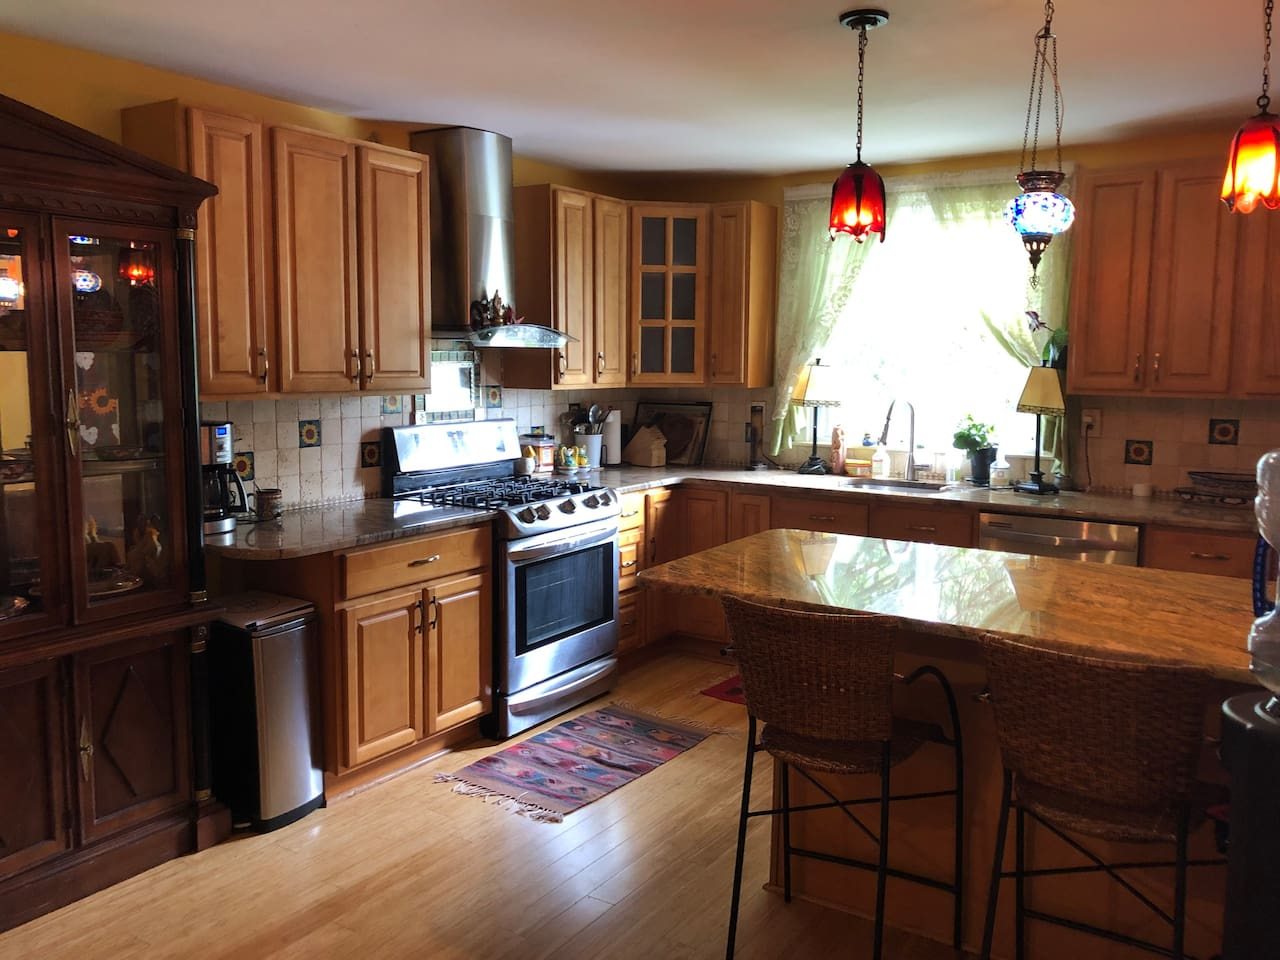 State of the art kitchen: chef's paradise. Best stocked kitchen you will ever find. 5 burner stove, large refrigerator, granite countertop and island, all spices, cooking supplies and cooking equipment: blender, food processor, coffee maker, and more